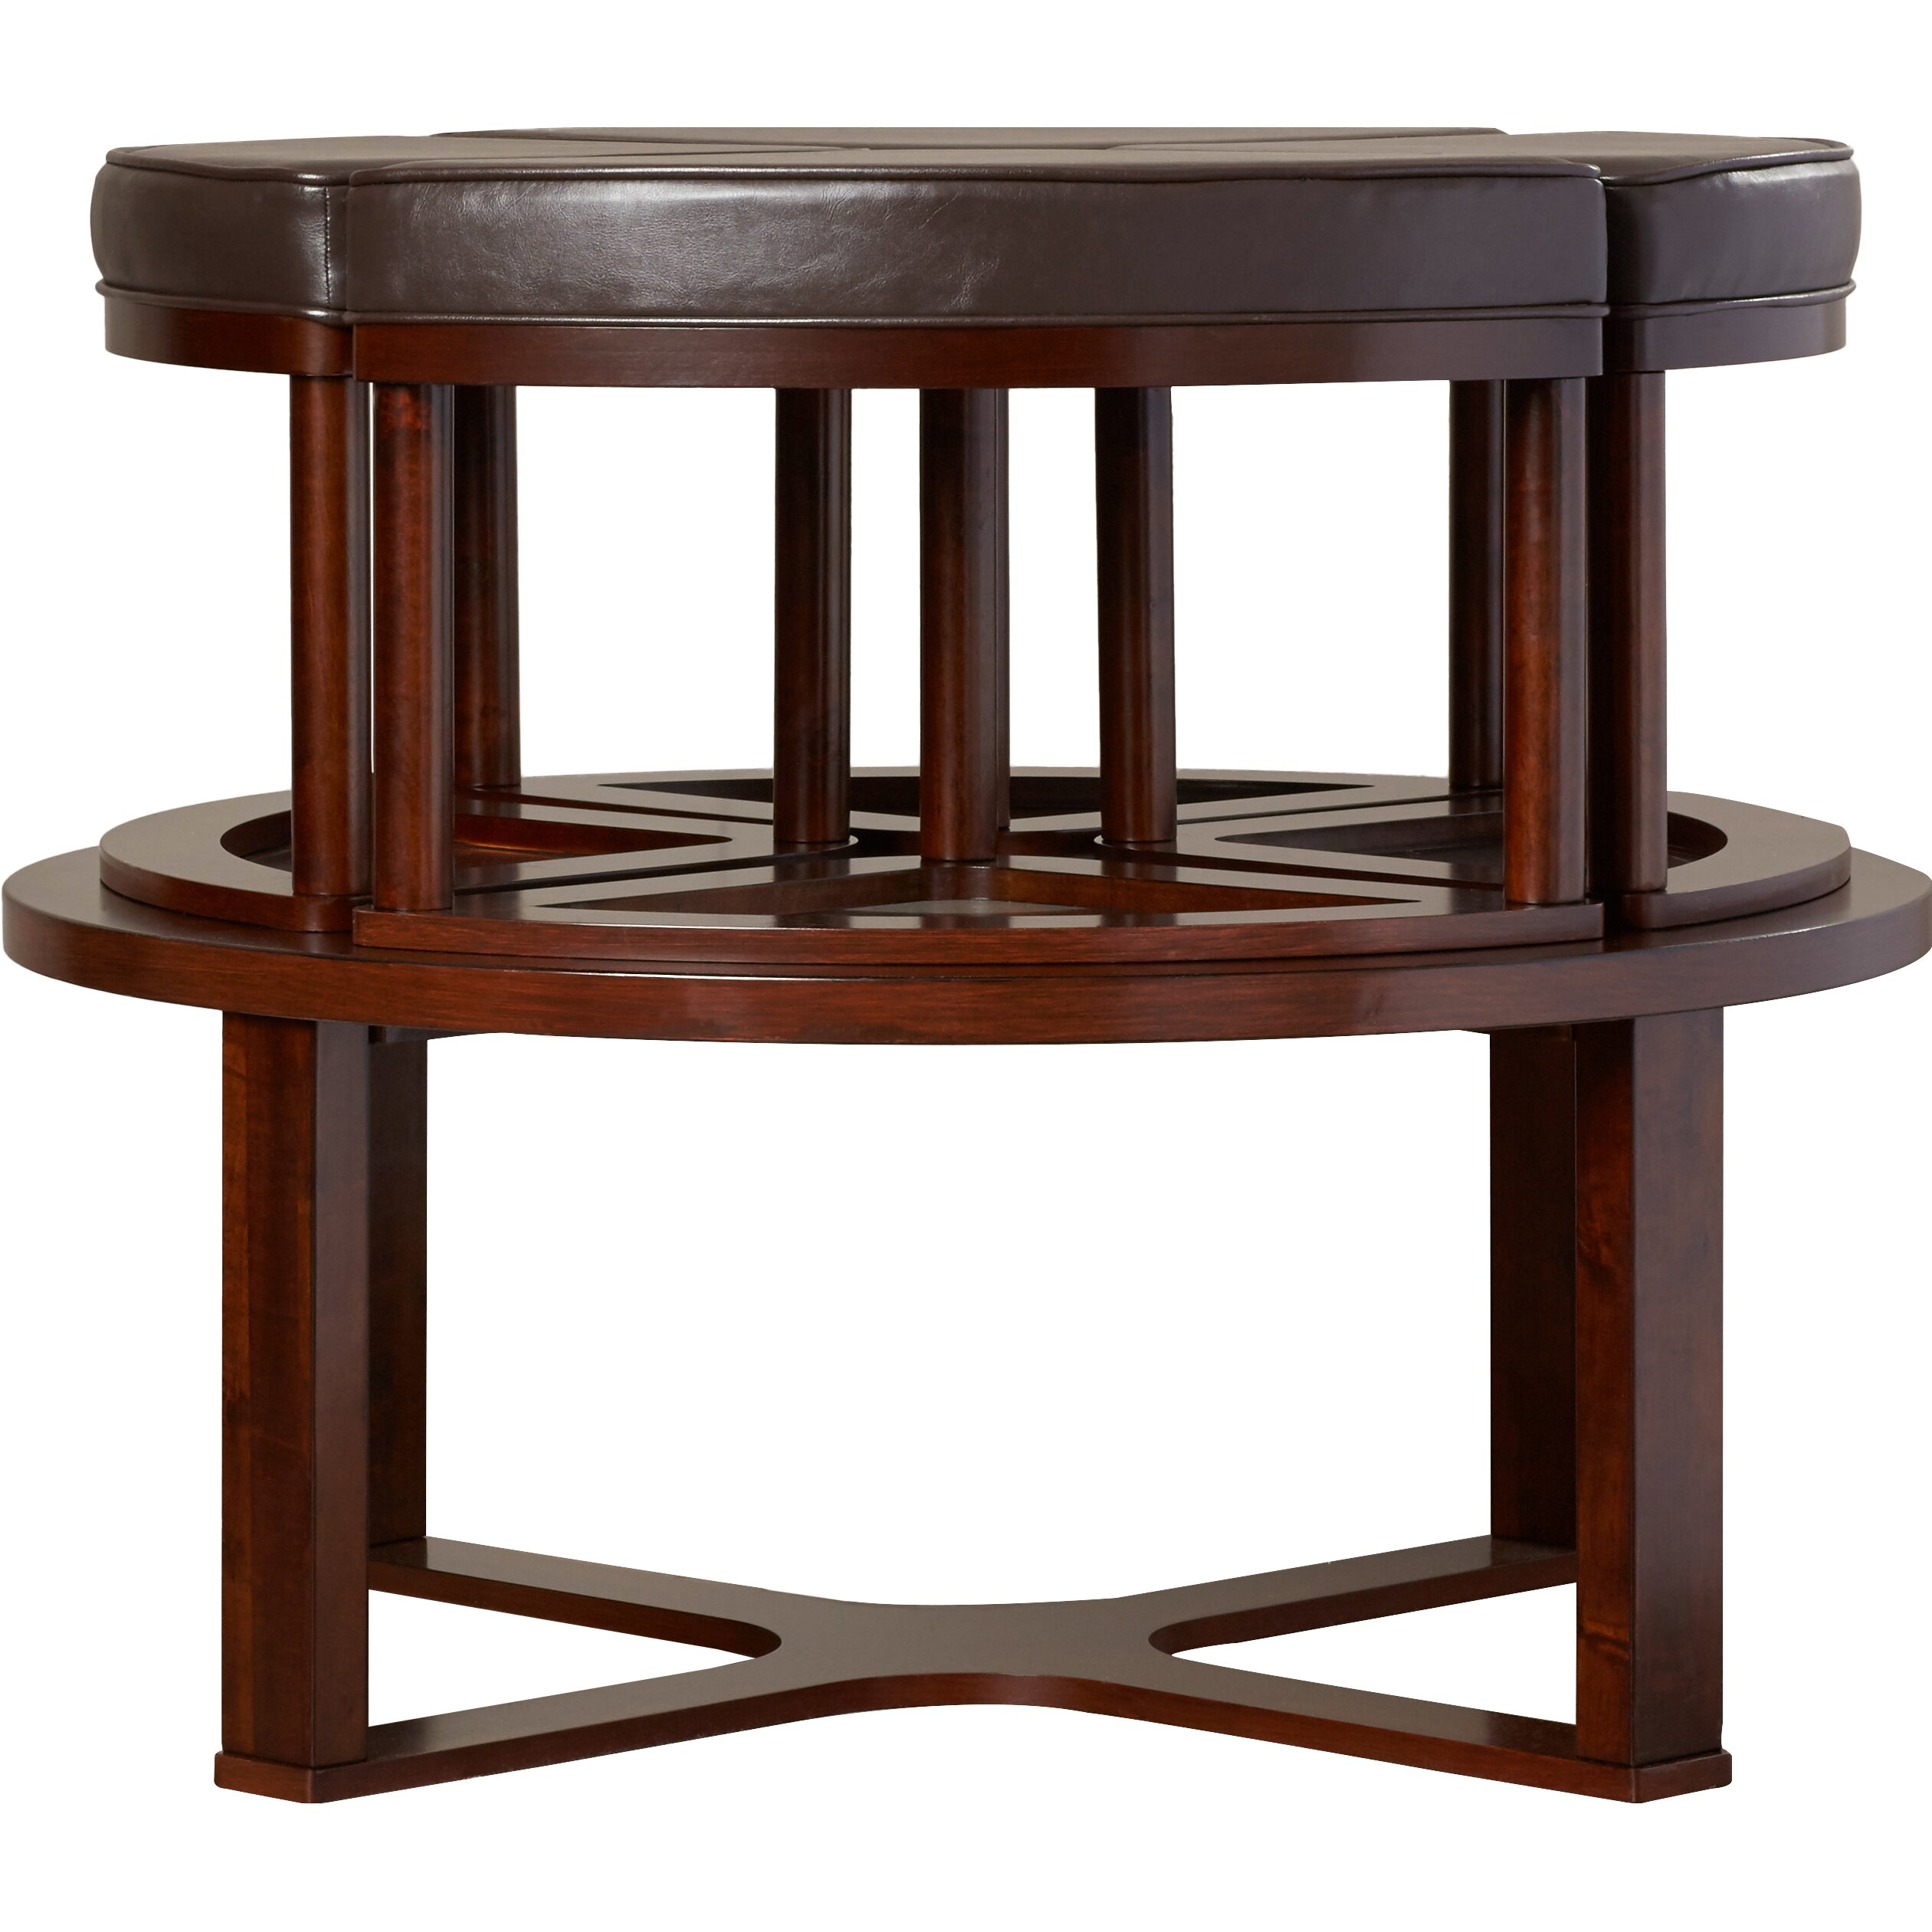 Coffee Table Stool Darby Home Co Eastin 5 Piece Coffee Table And Stool Set Reviews